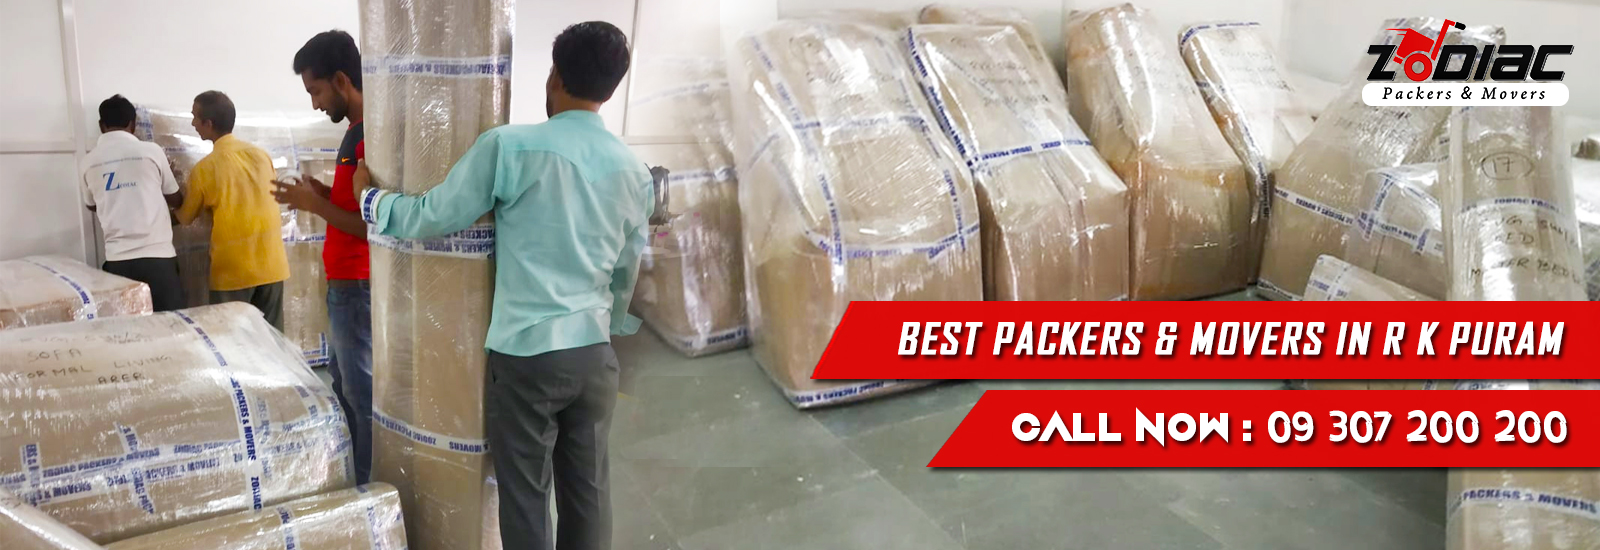 Packers and Movers in R K Puram